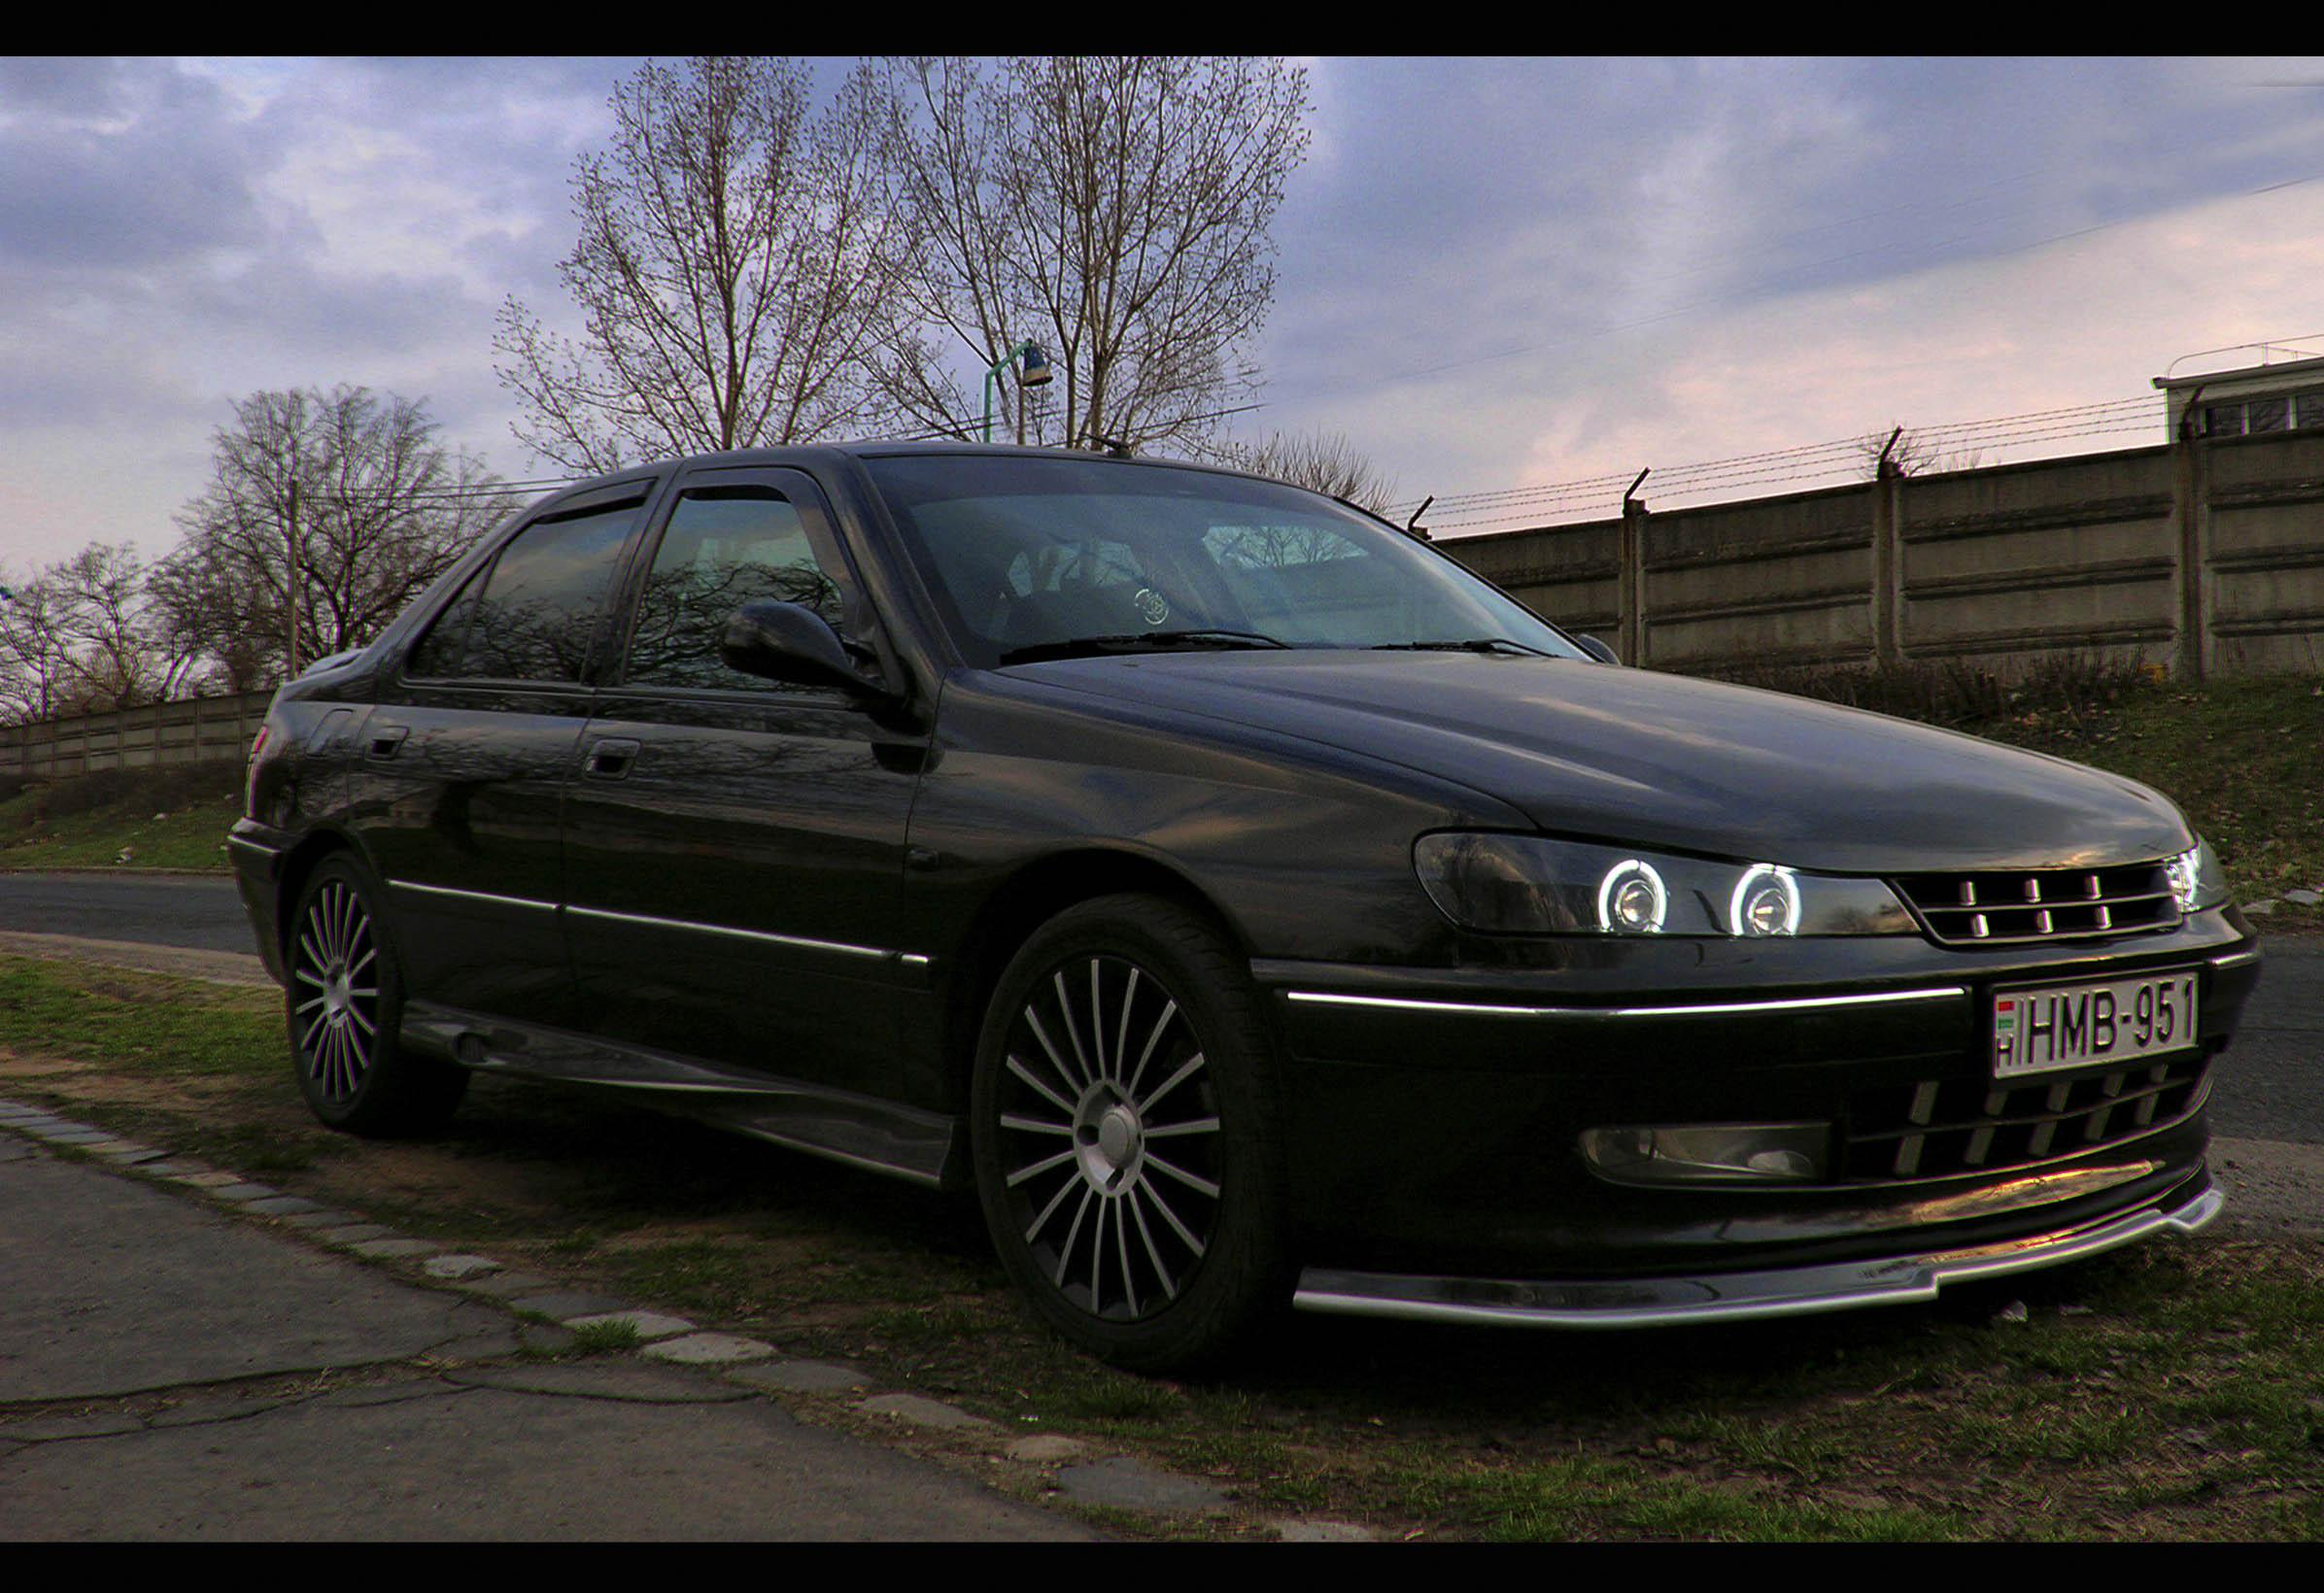 Advertise On My Car >> 19741202 2001 Peugeot 406 Specs, Photos, Modification Info at CarDomain